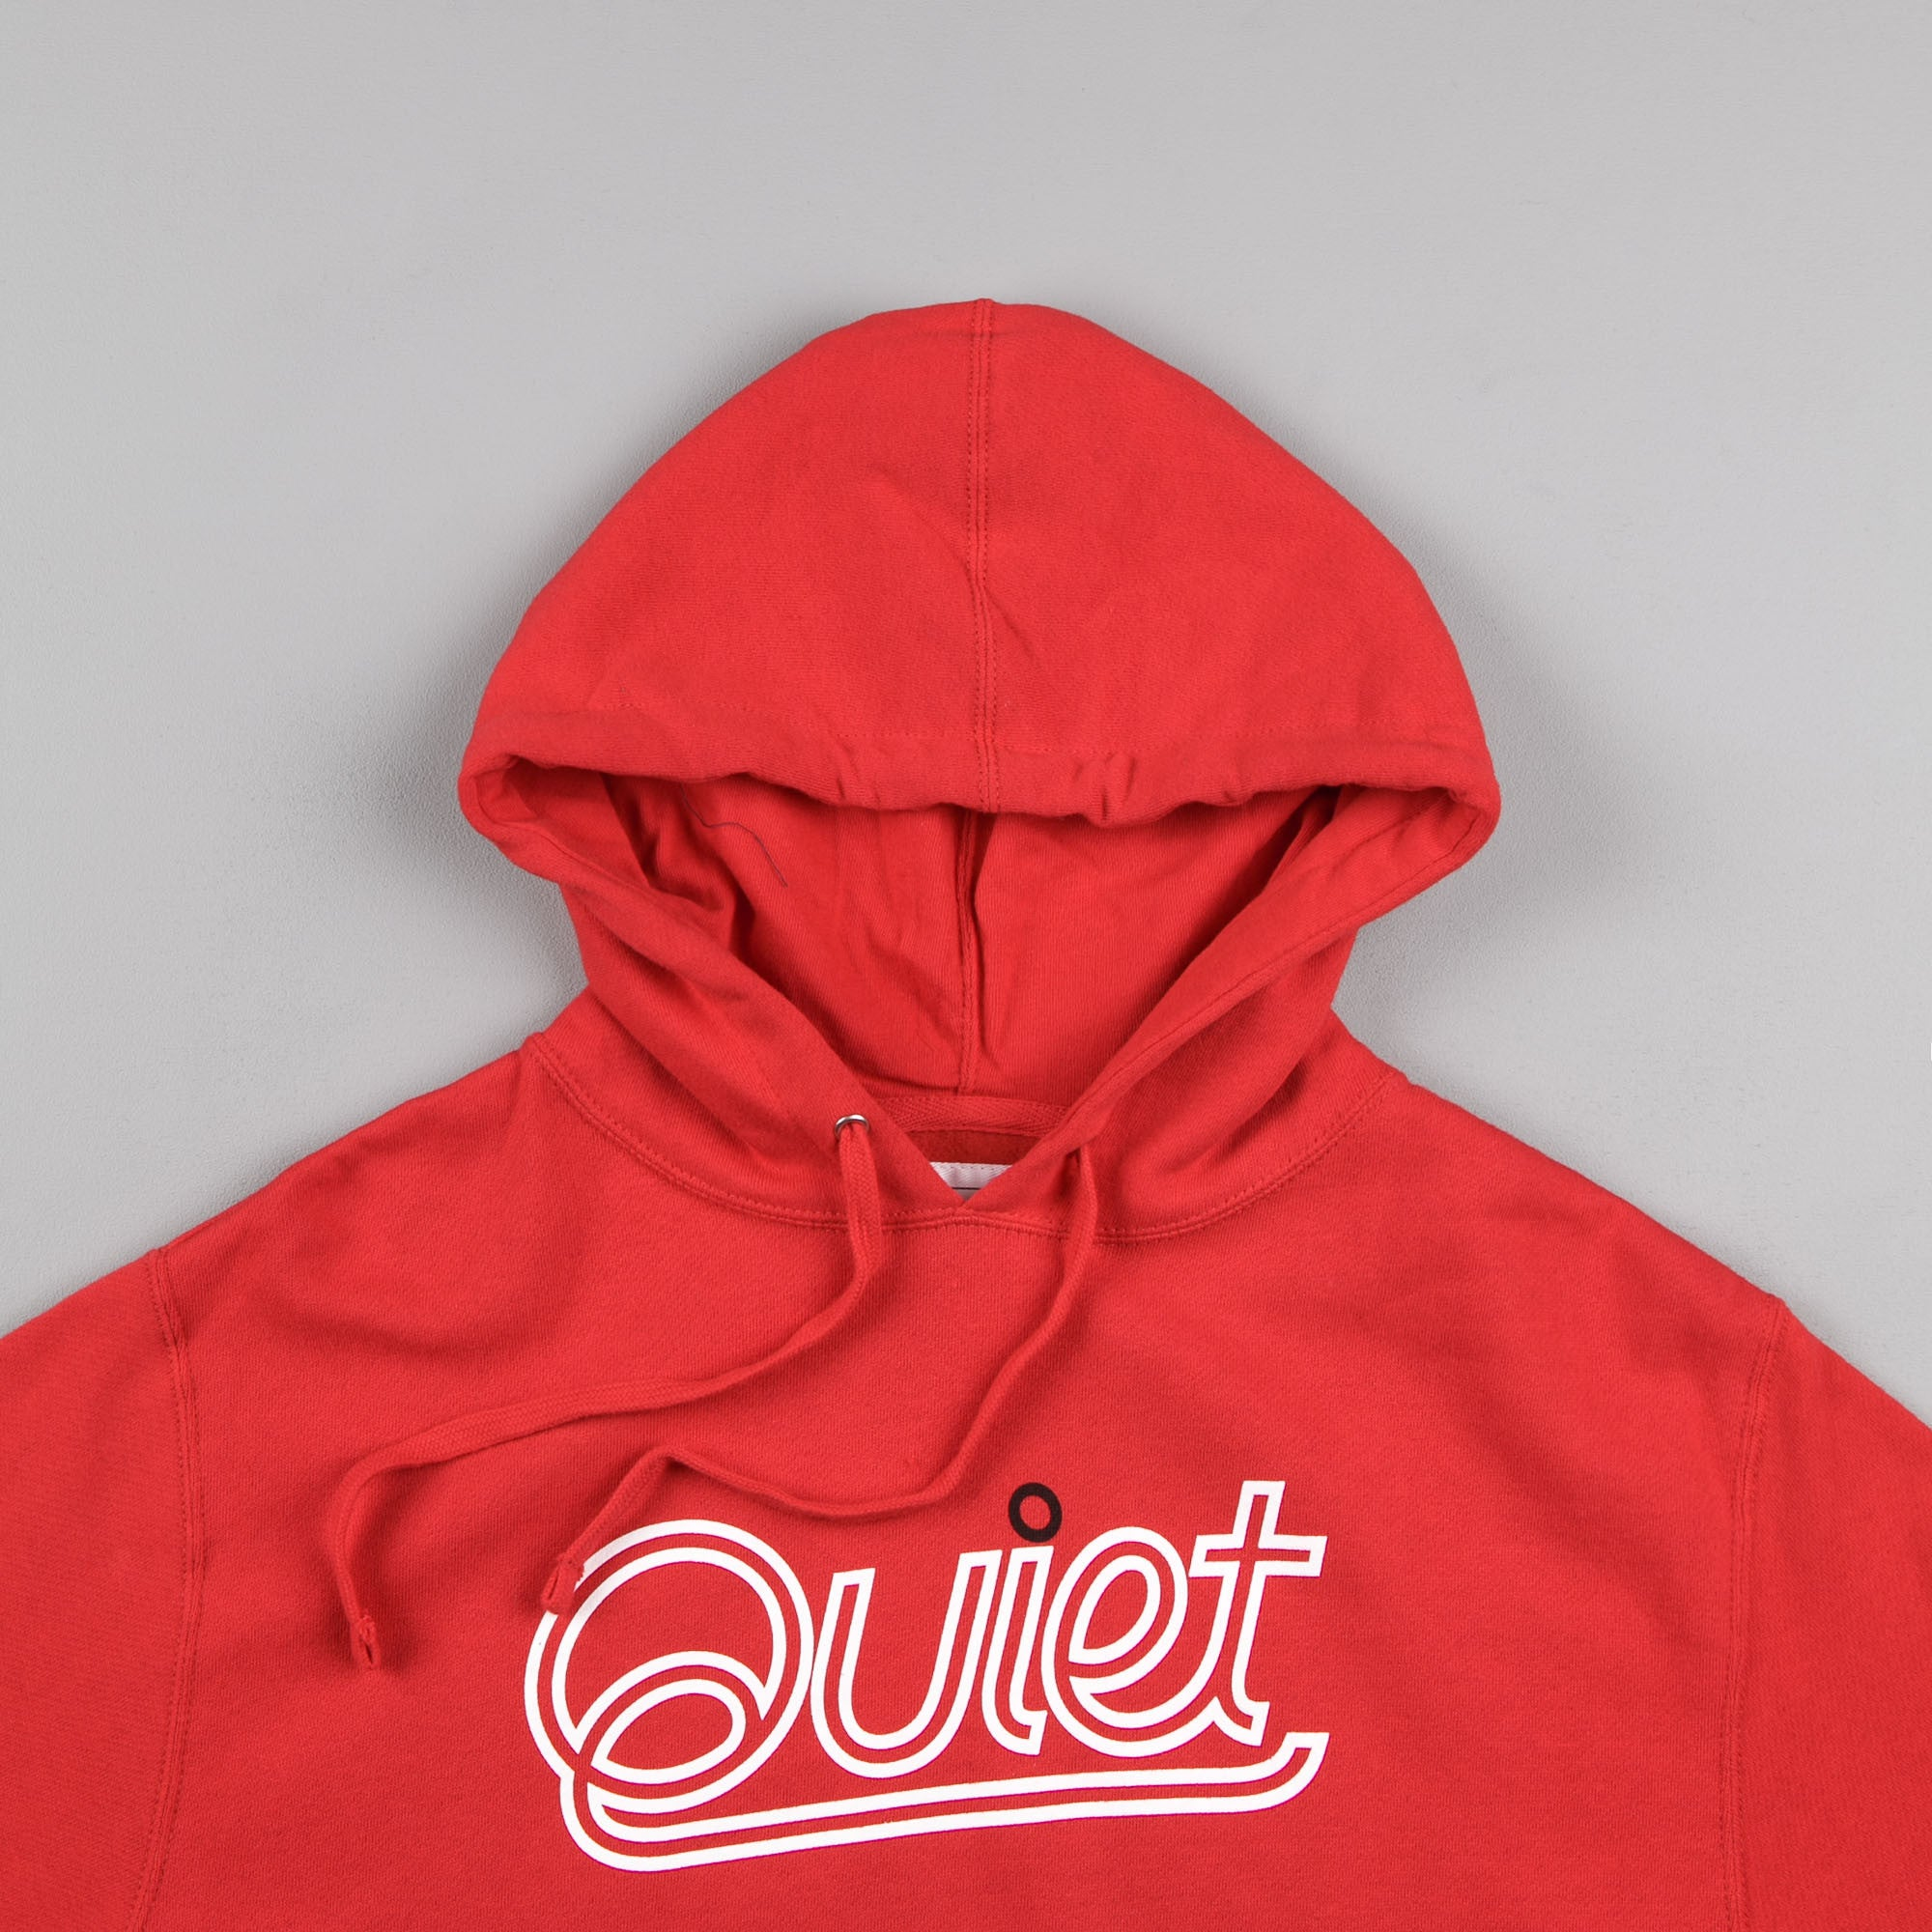 The Quiet Life Script Outline Hooded Sweatshirt - Red